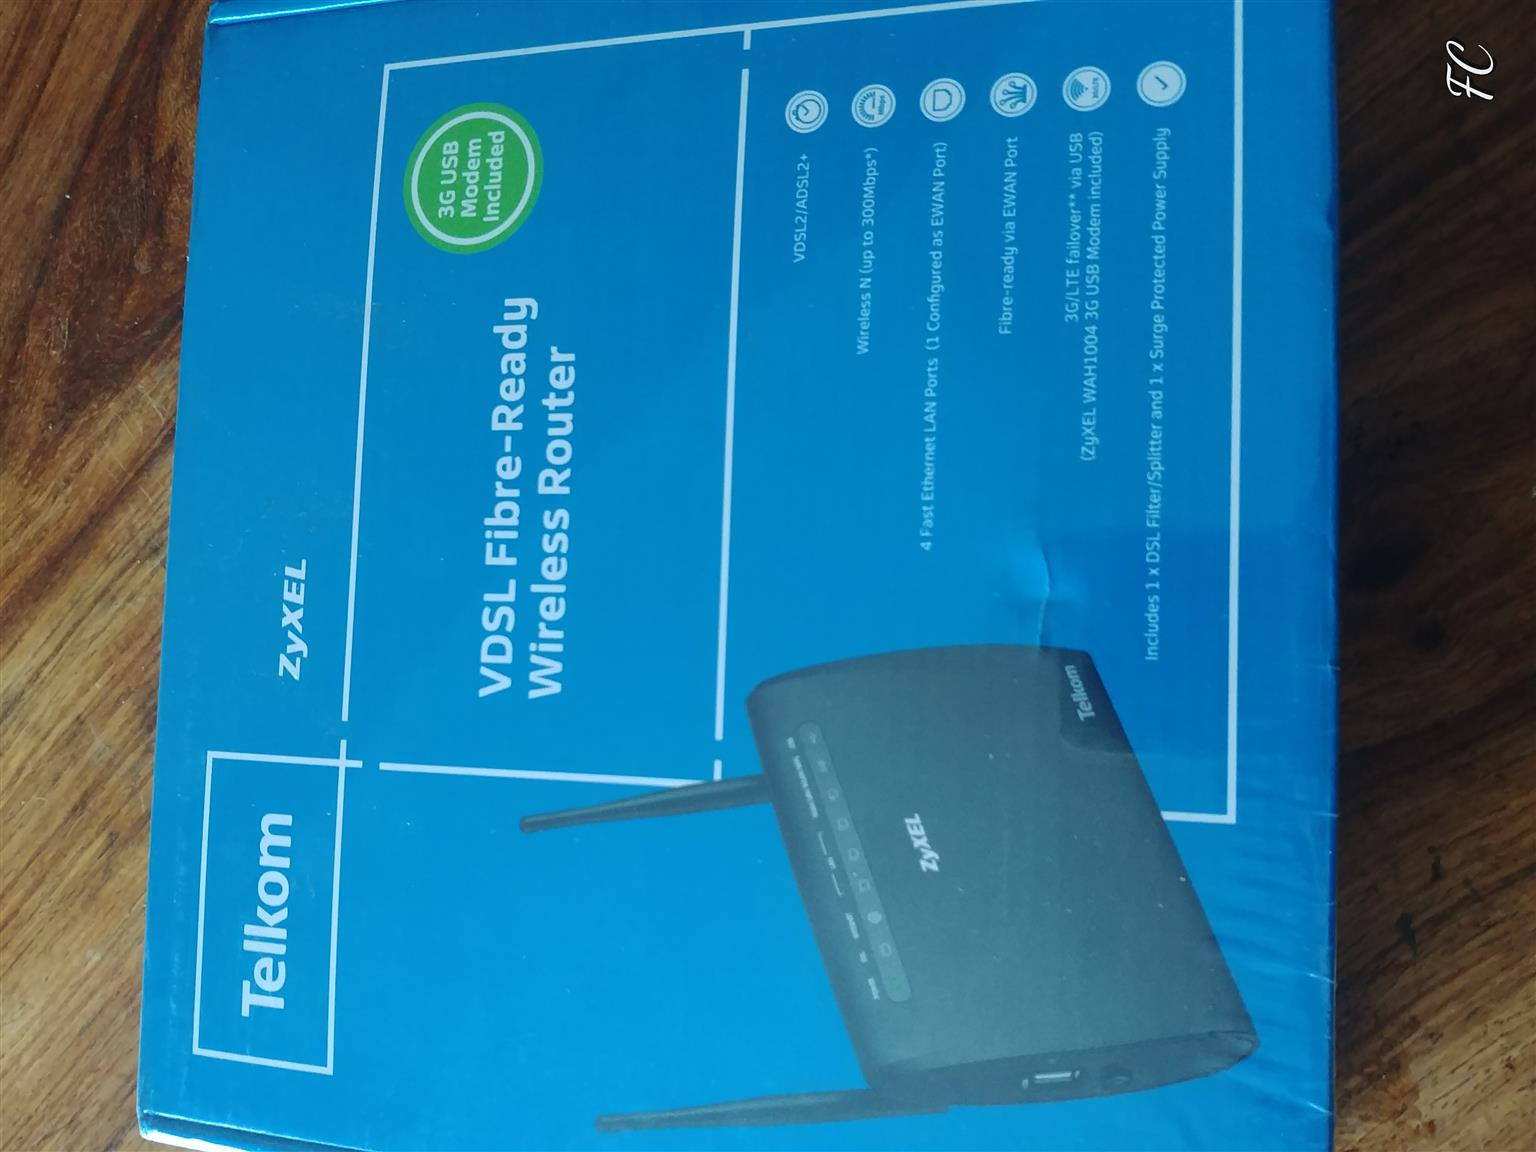 ROUTERS - Brand new, Fiber ready modems for sale , 2x Modems.